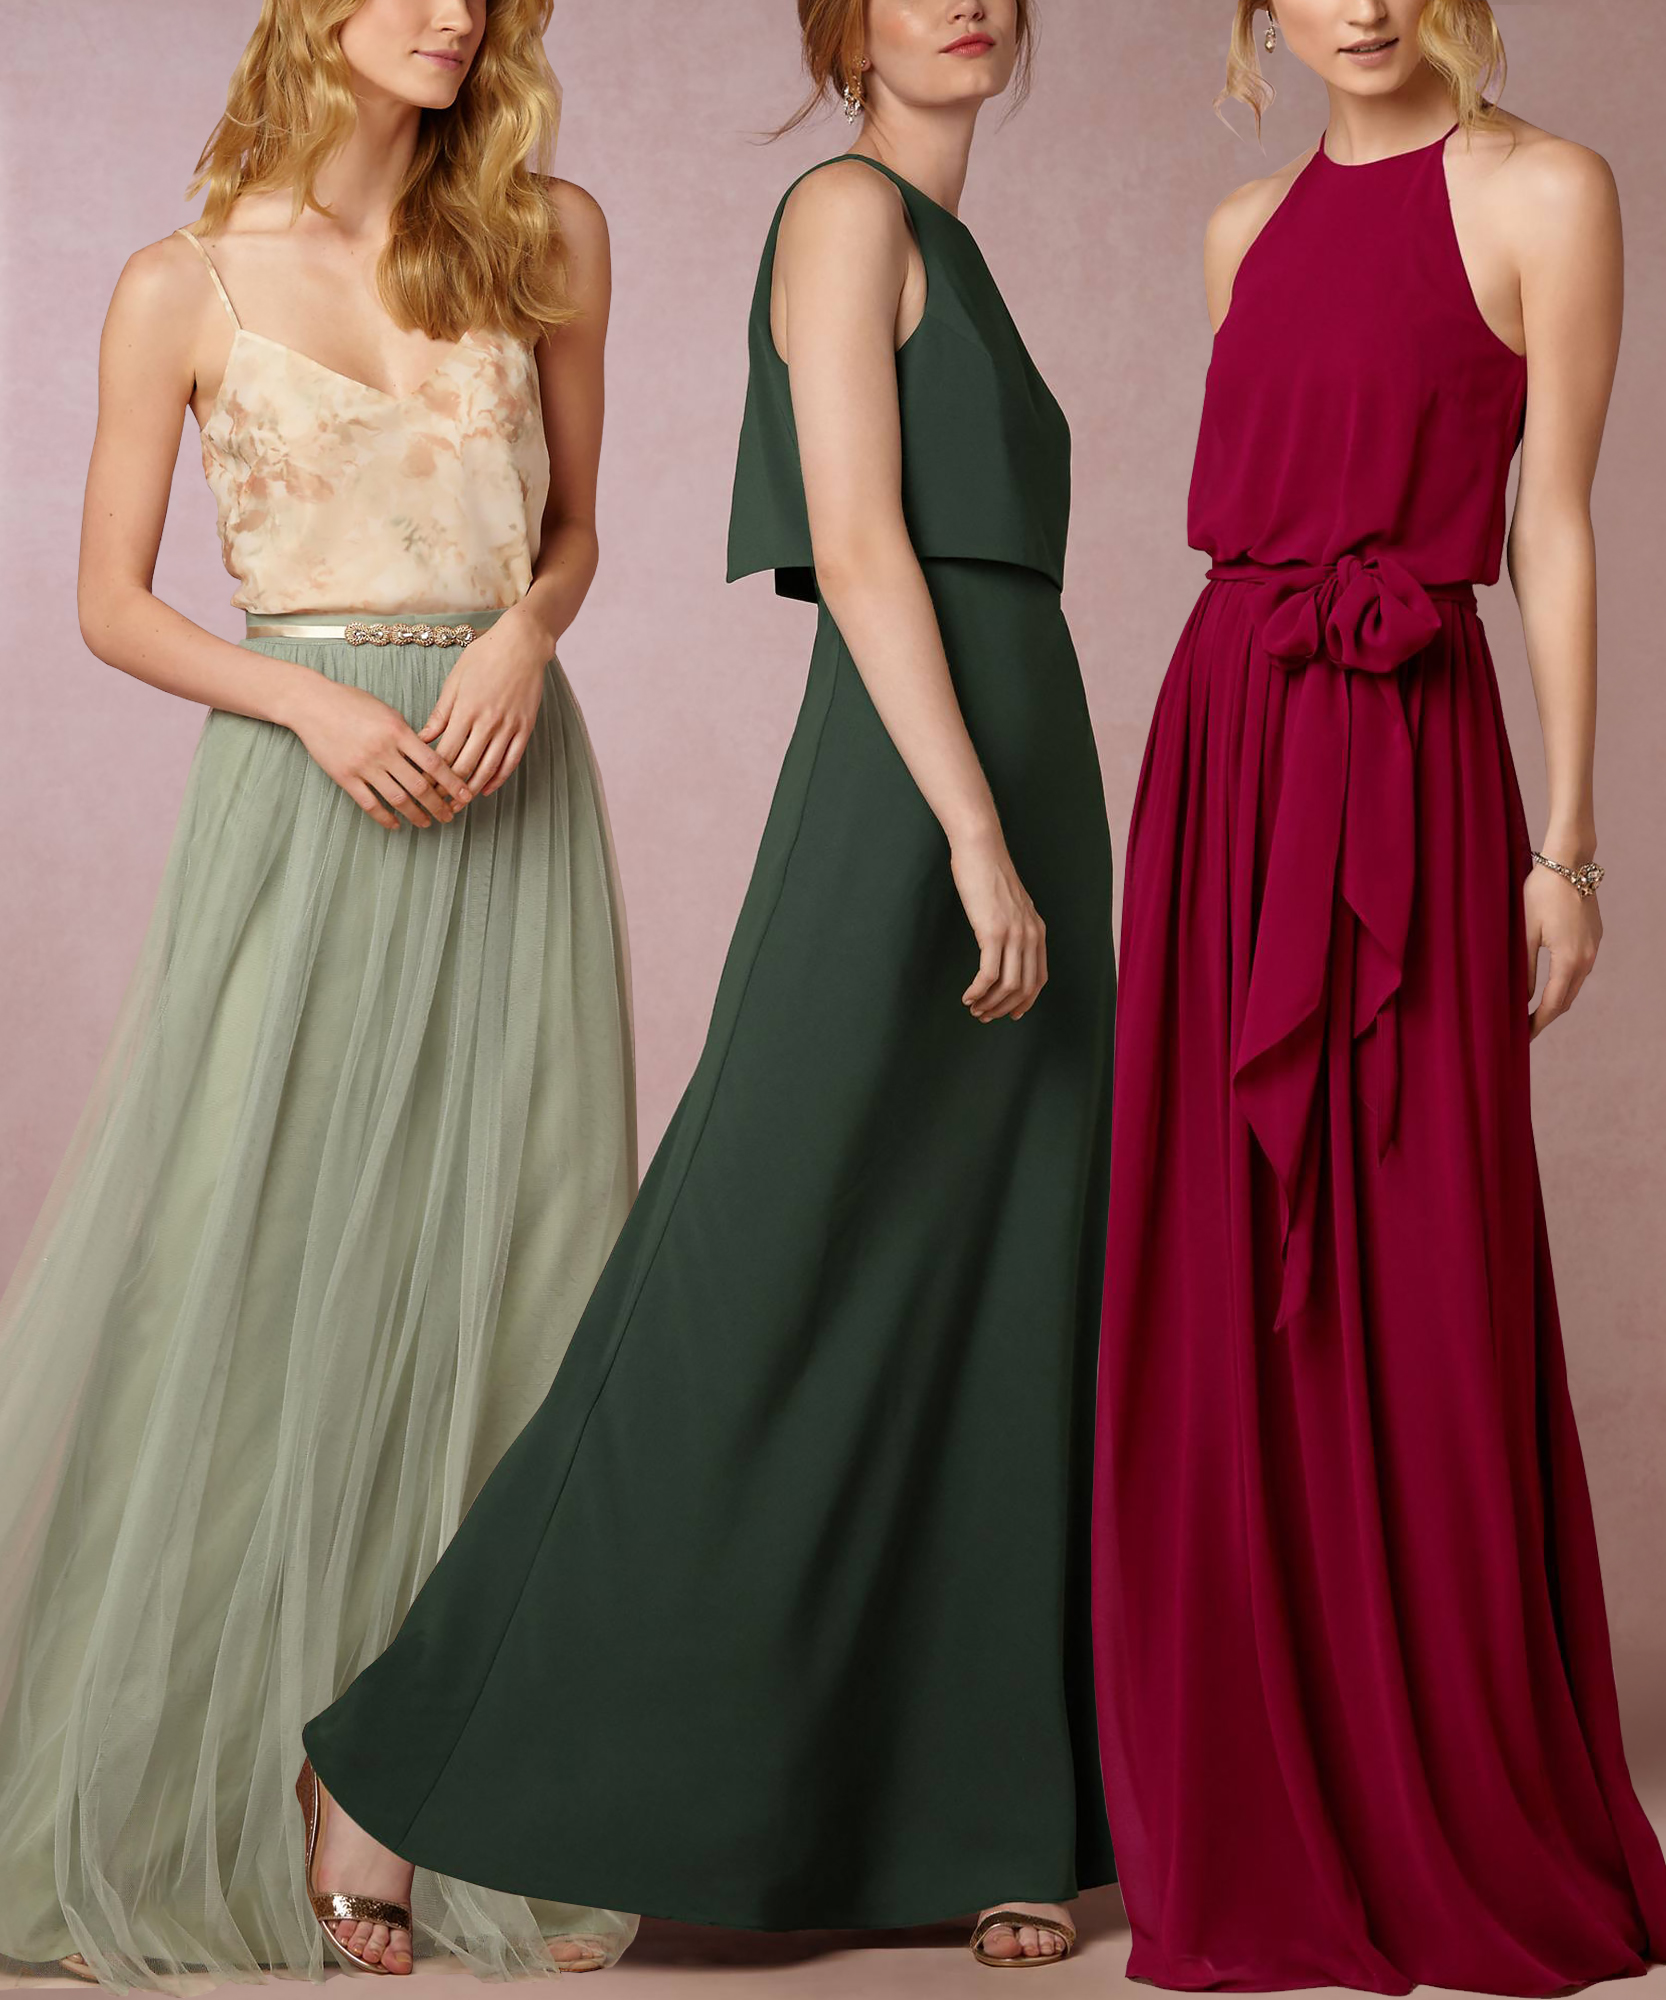 Bridesmaids Dresses To Wear Again